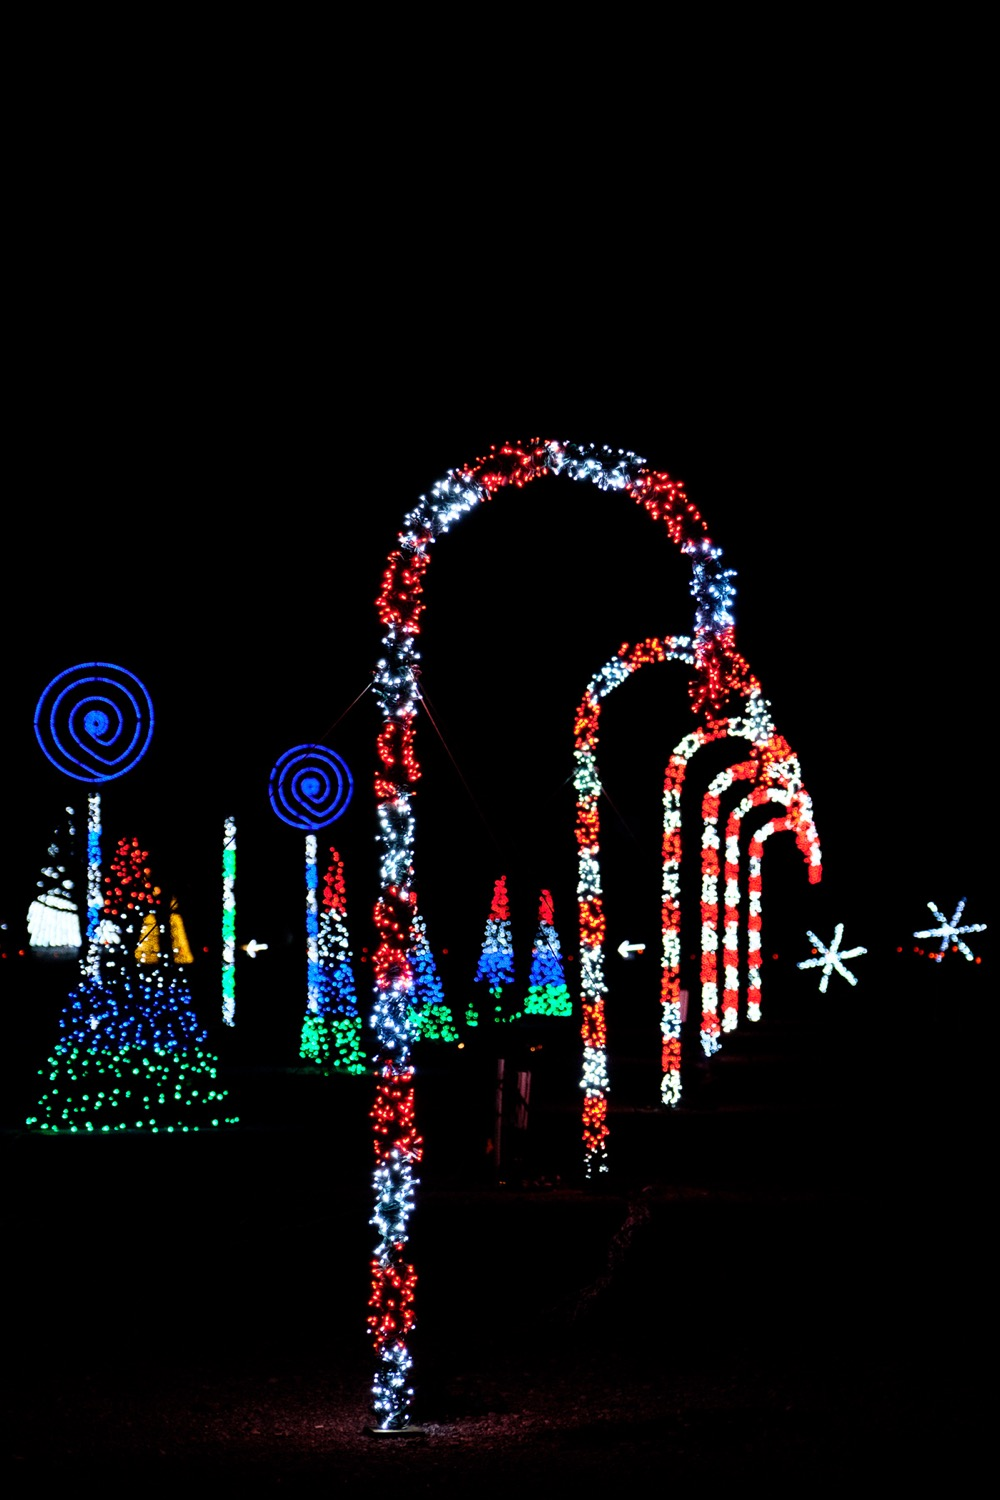 Christmas Nights of Lights at Coney Island features over a million lights. The show runs every night through January 6, 2019. It begins at dusk and runs until 10 p.m. with extended hours on weekends. / Image: Daniel Smyth // Published: 11.12.18